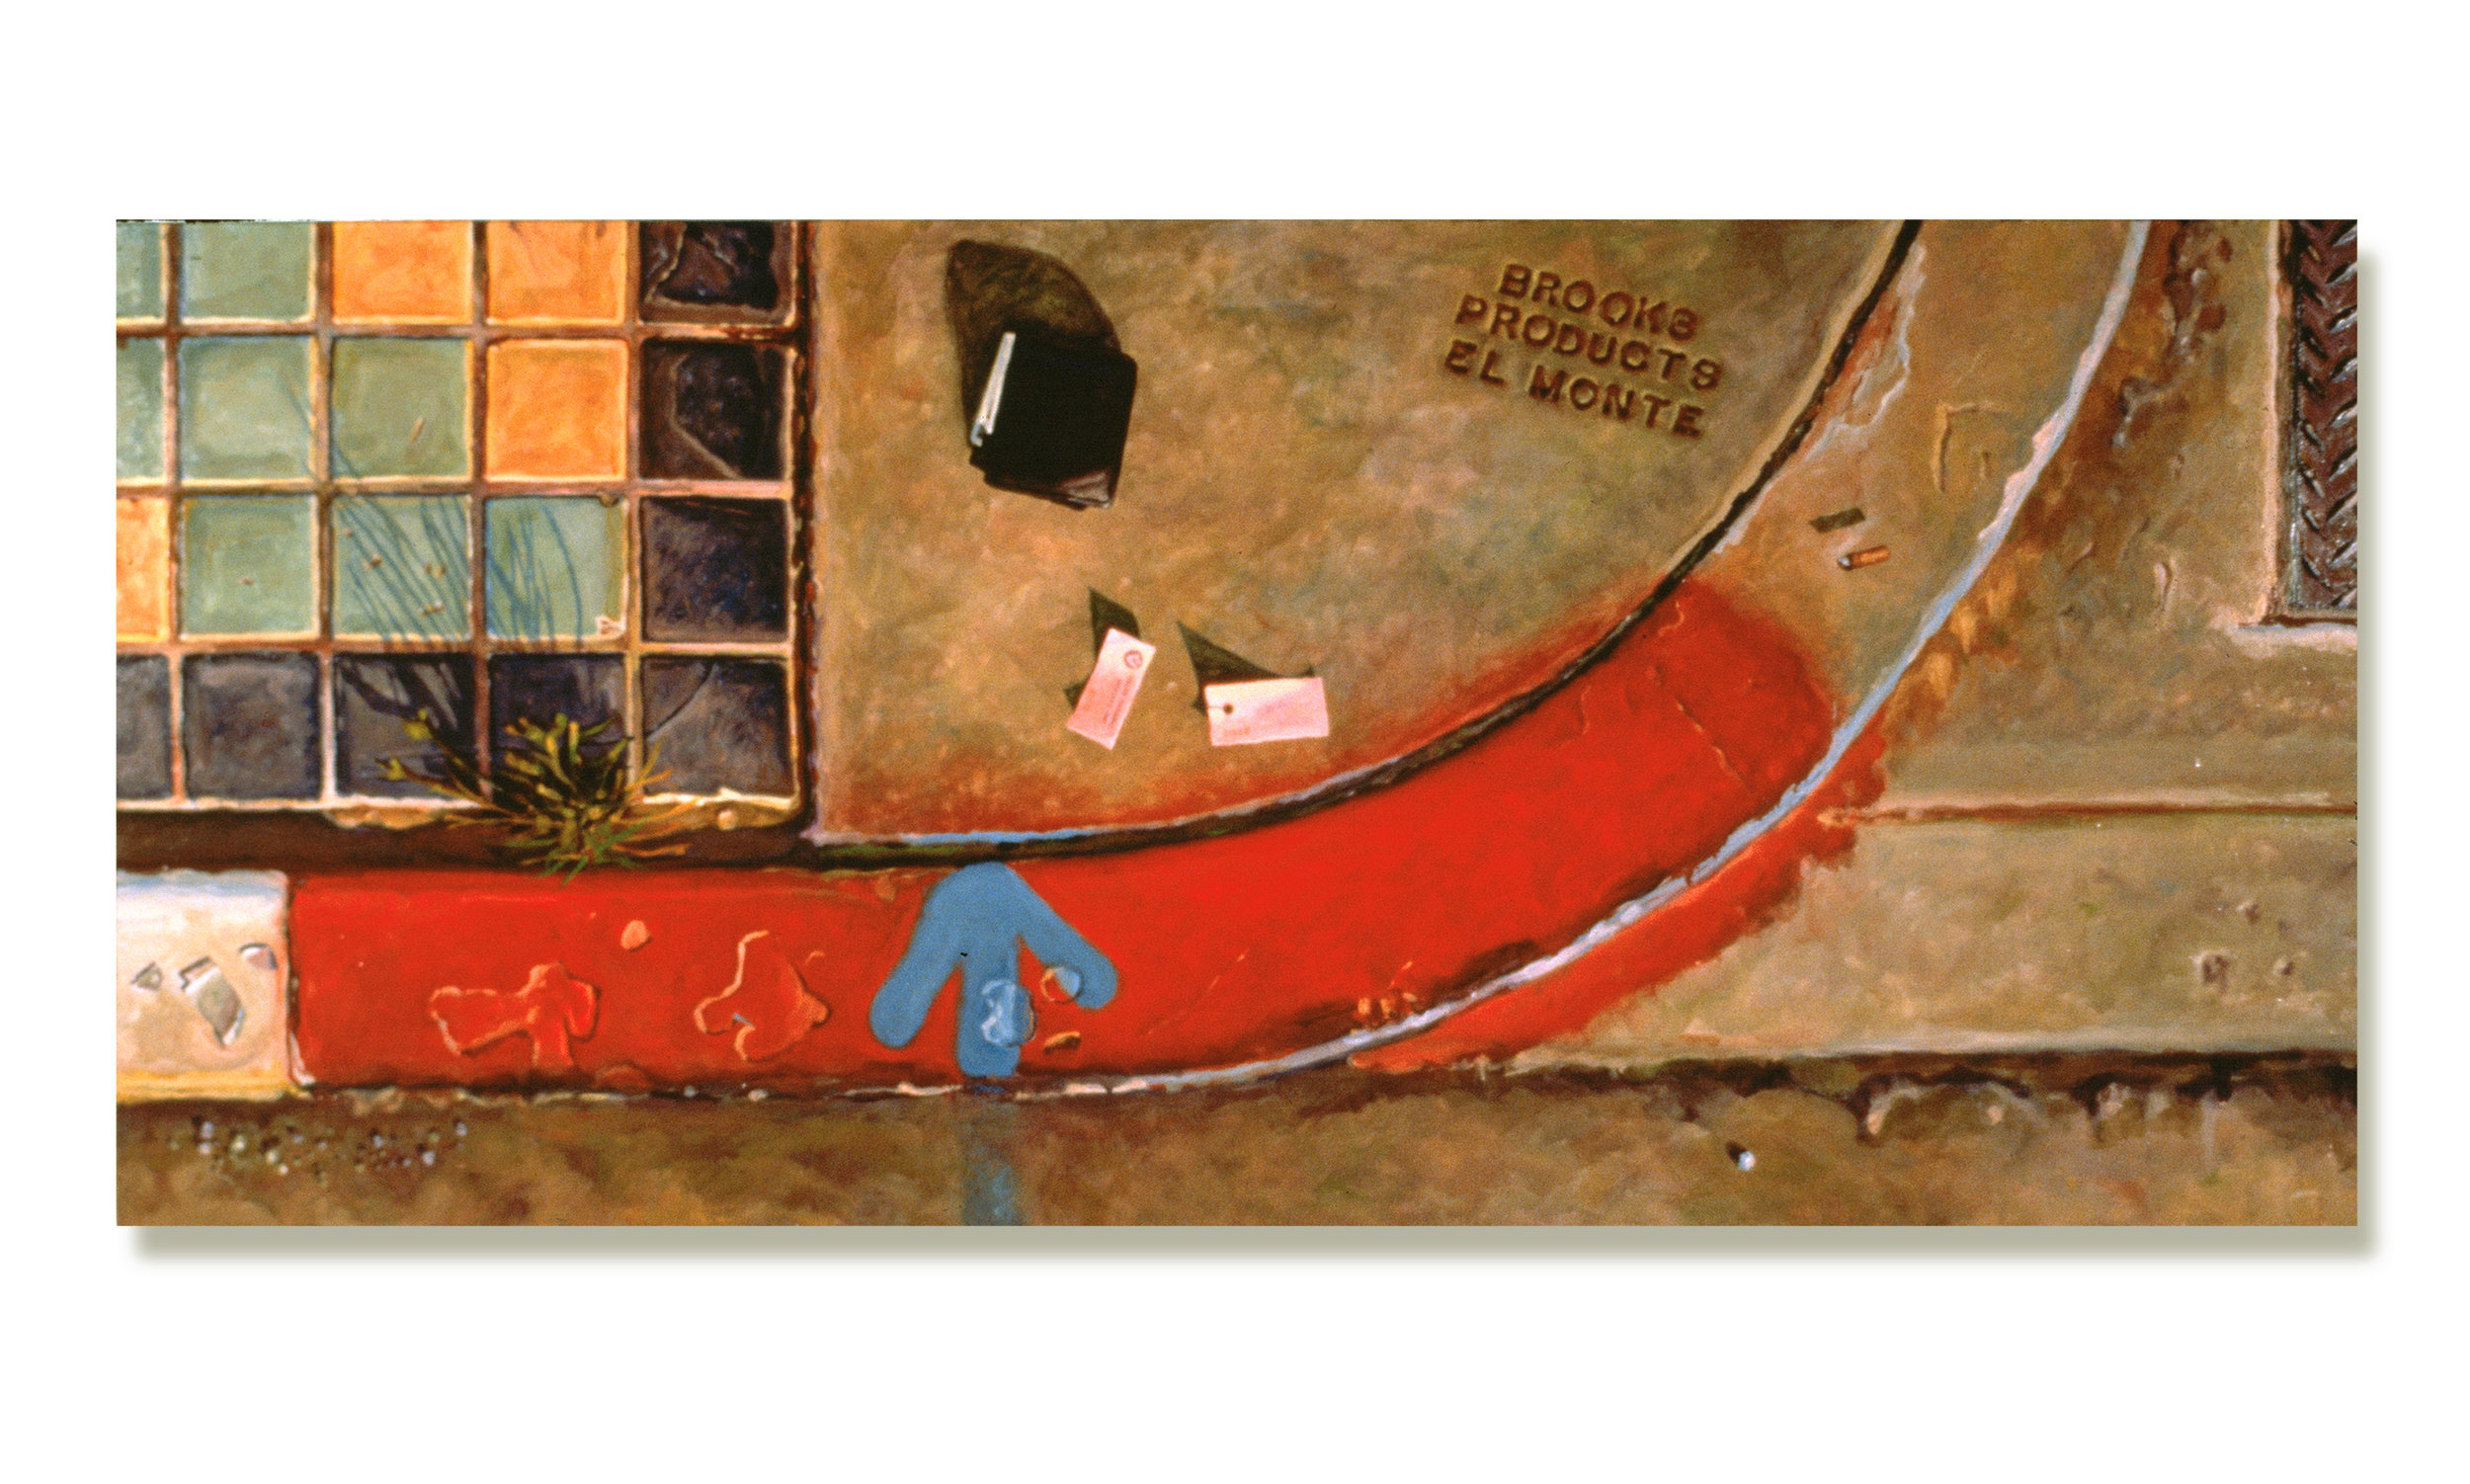 BROOKS PRODUCTS / OIL ON CANVAS / 26 X 64